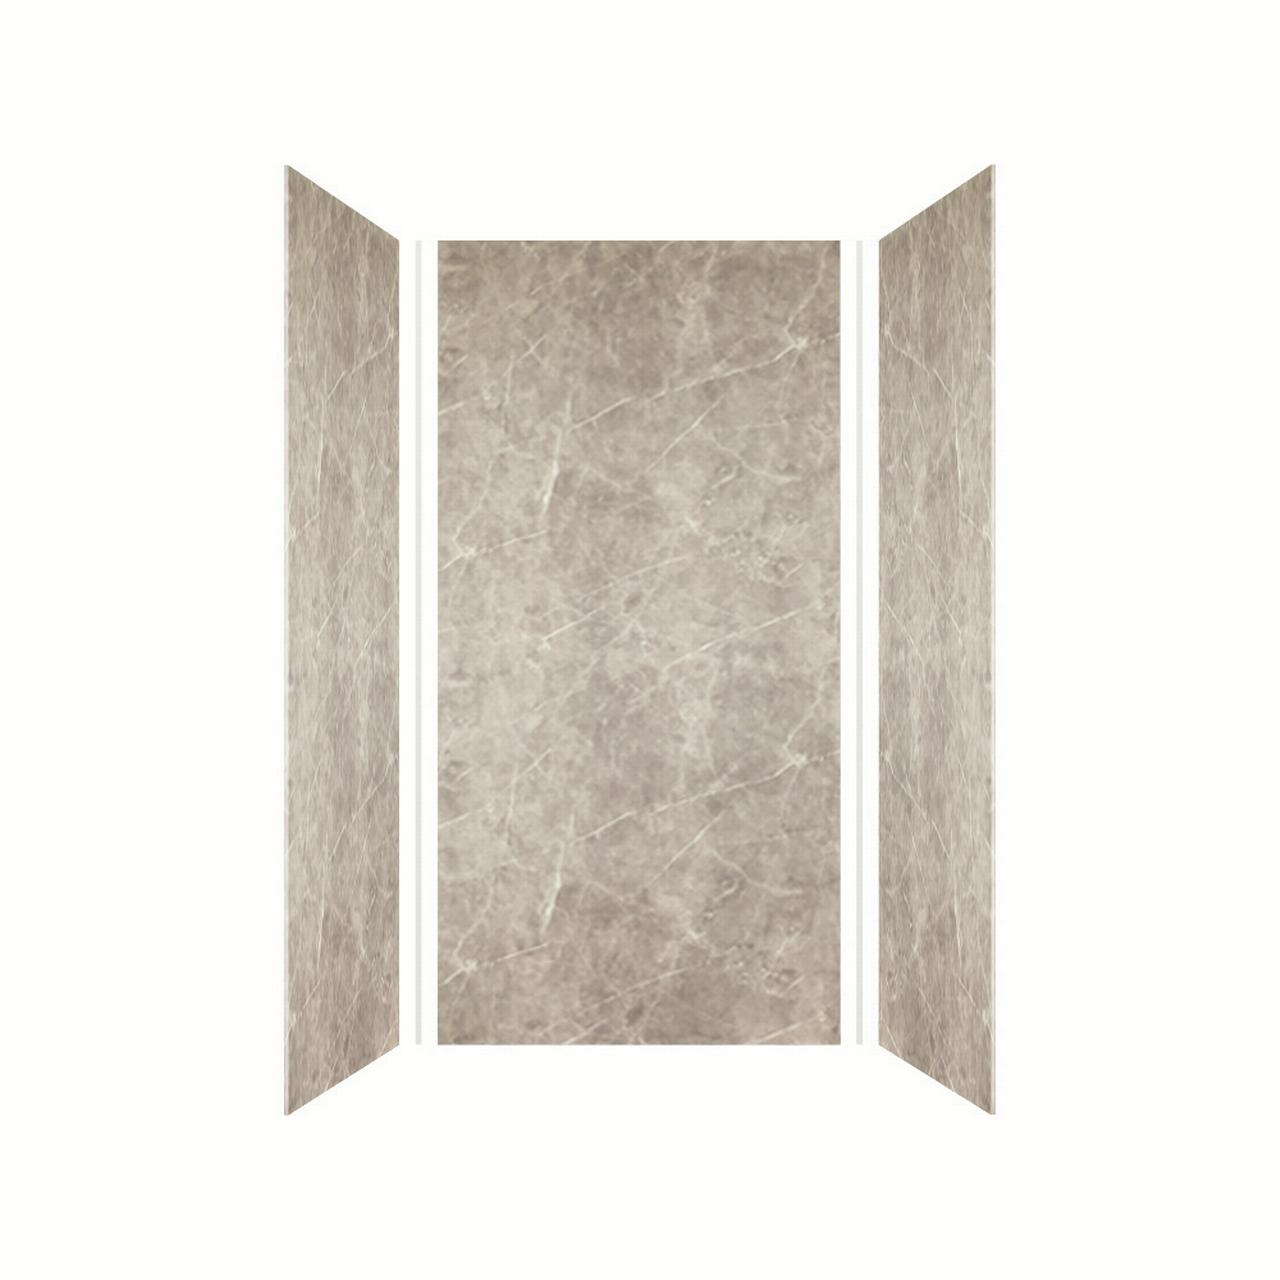 Transolid EWK363672-42 Expressions 36-in x 36-in x 72-in 3-Panel Shower Wall Kit, Dover Stone